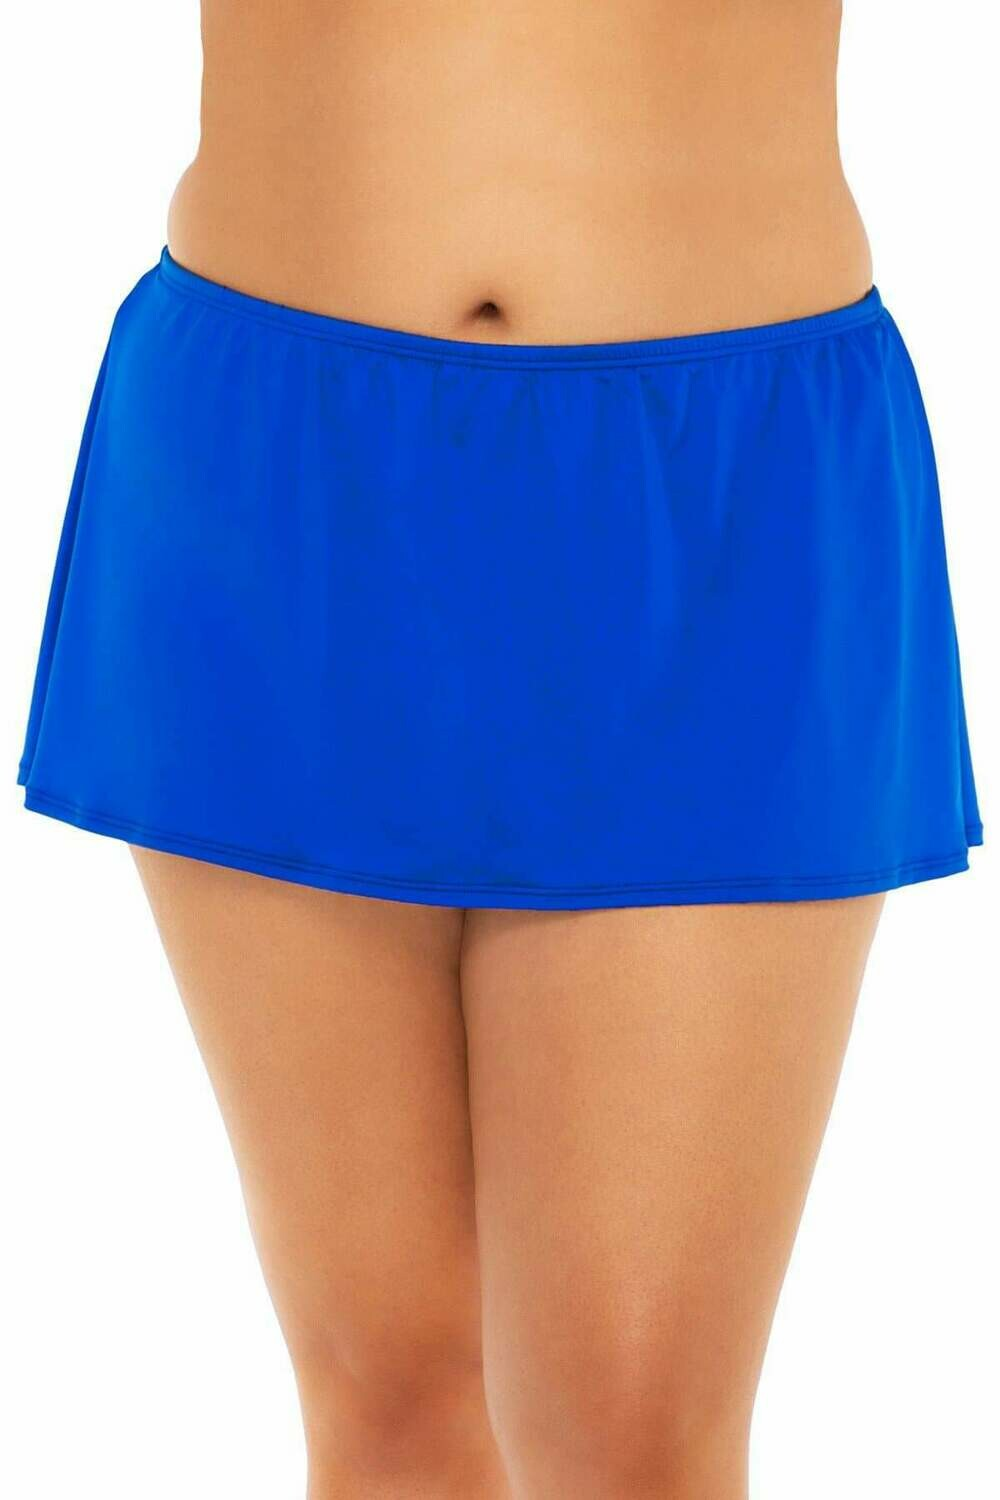 Sunsets Island Time Swim Skirt Imperial Blue